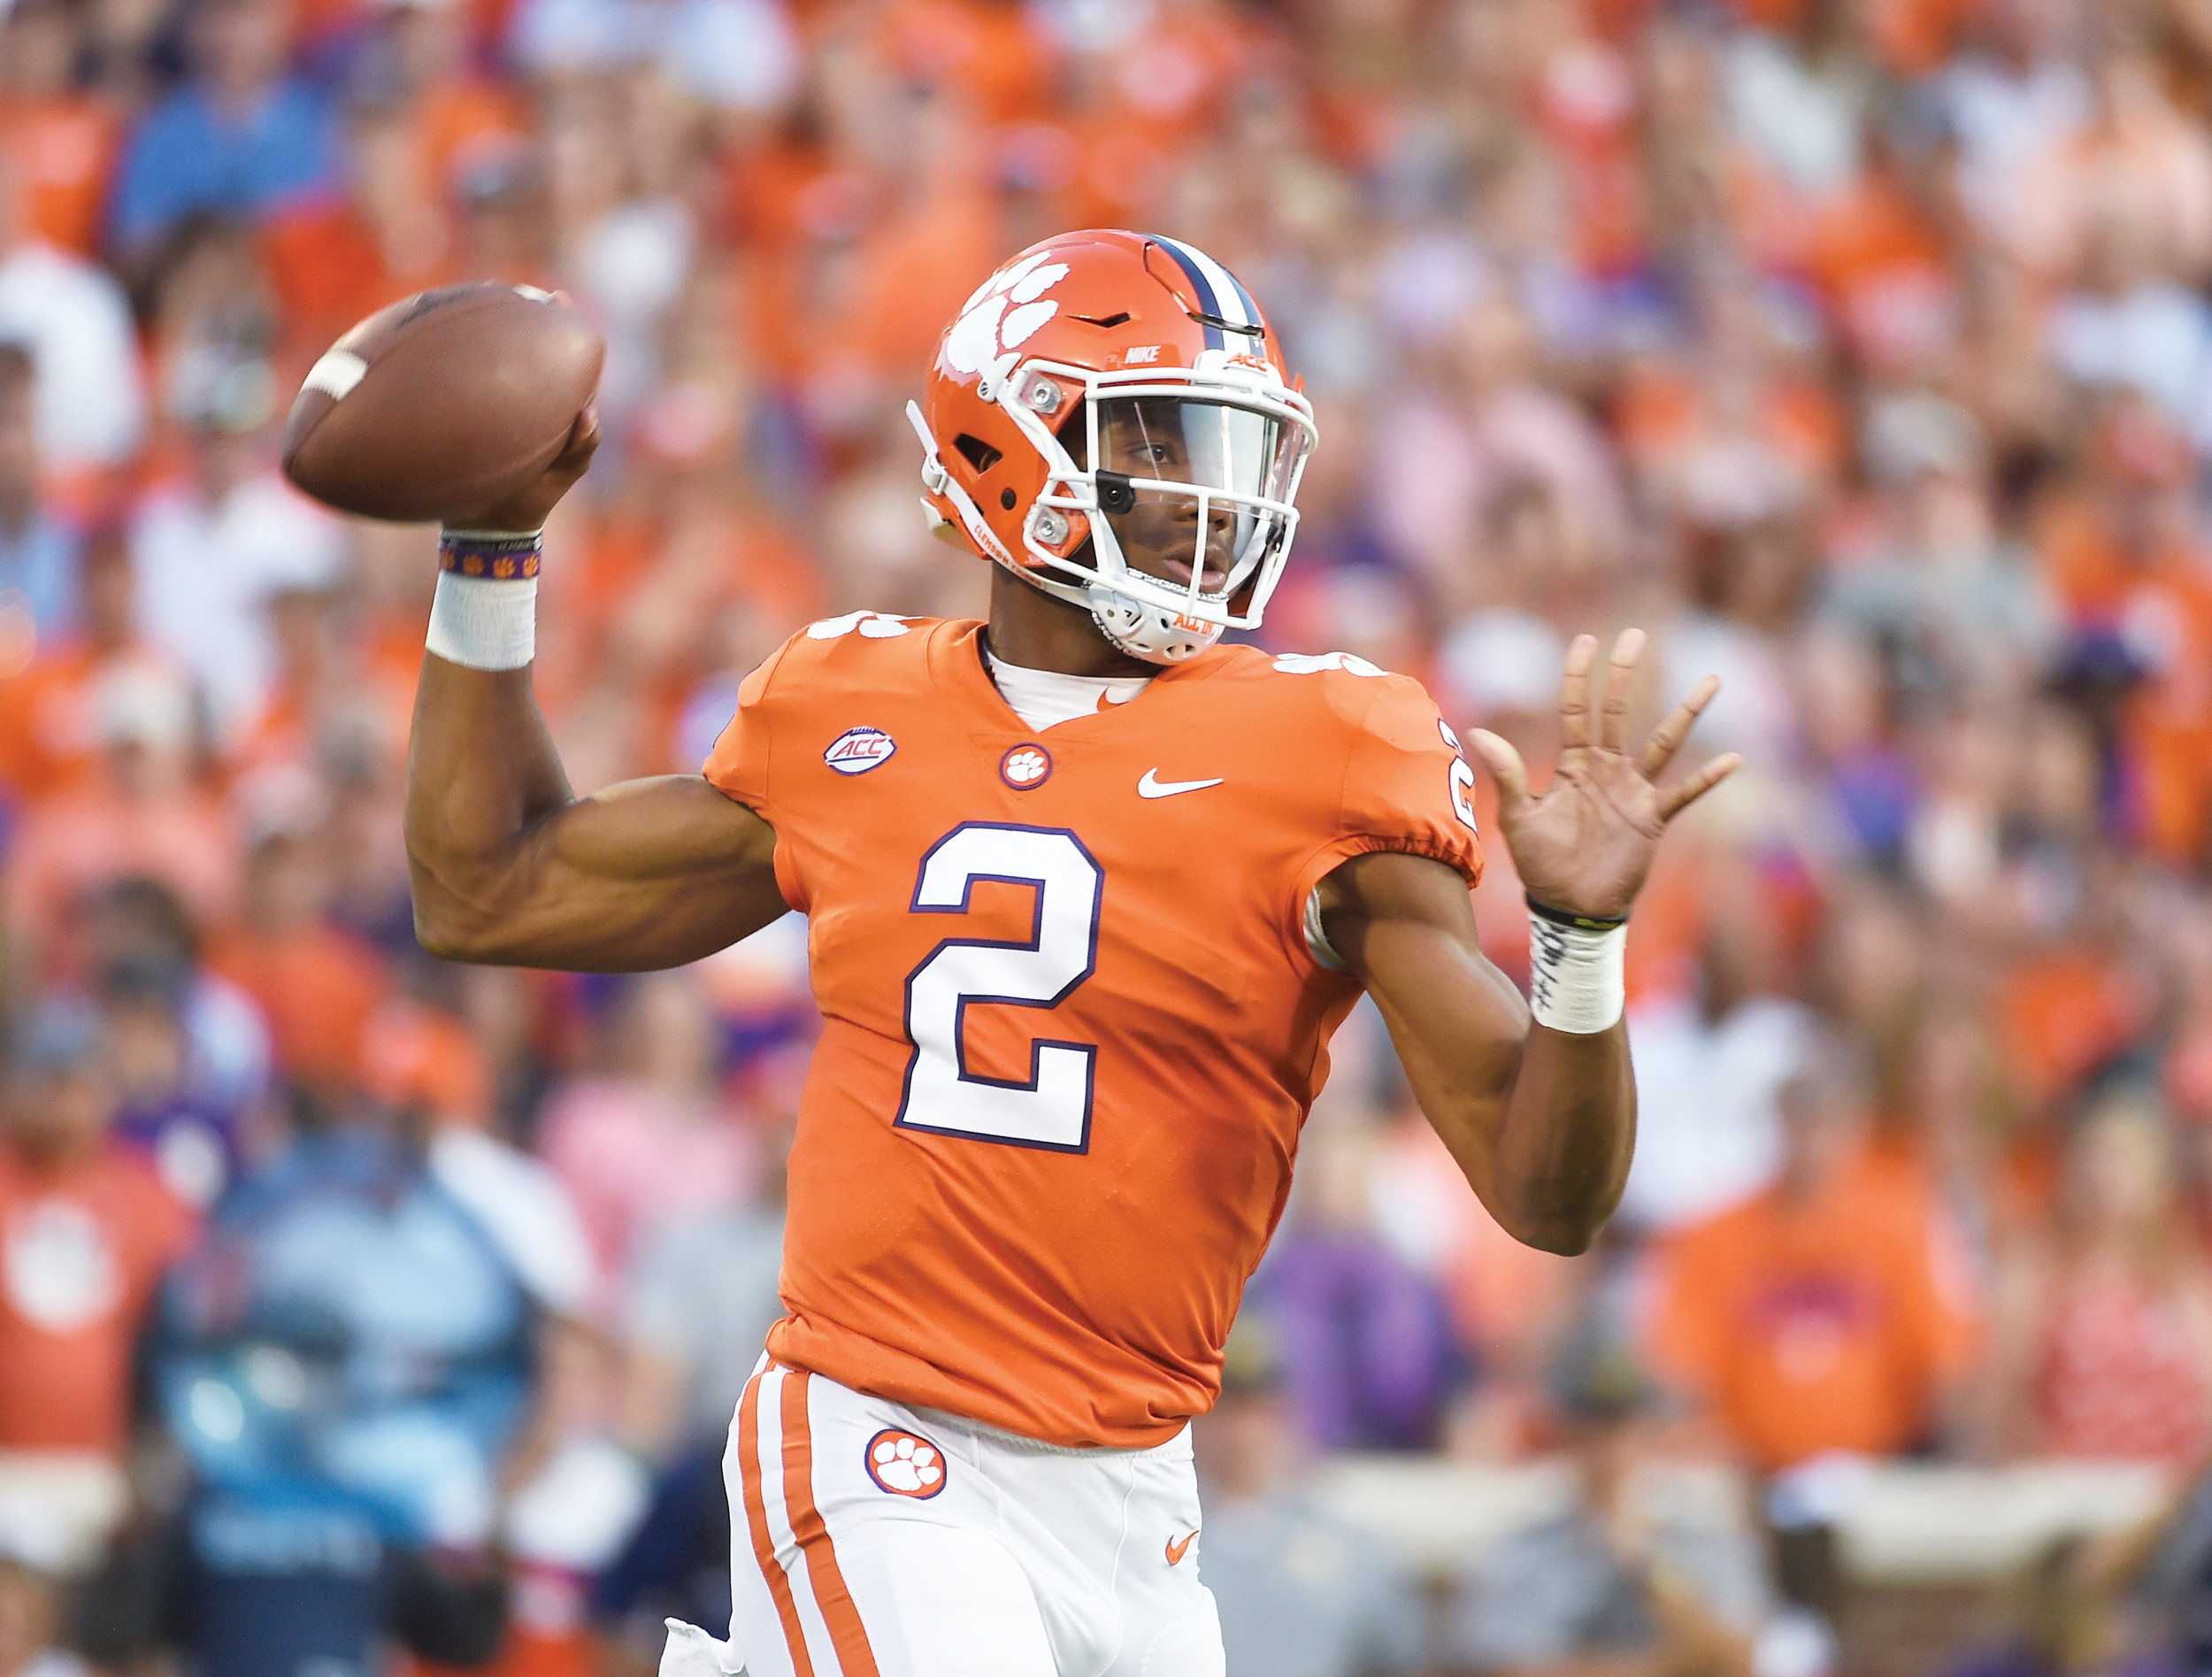 Clemson quarterback Kelly Bryant (2) looks to throw during Clemson's 14-6 victory over Auburn on Saturday at Memorial Stadium in Clemson.